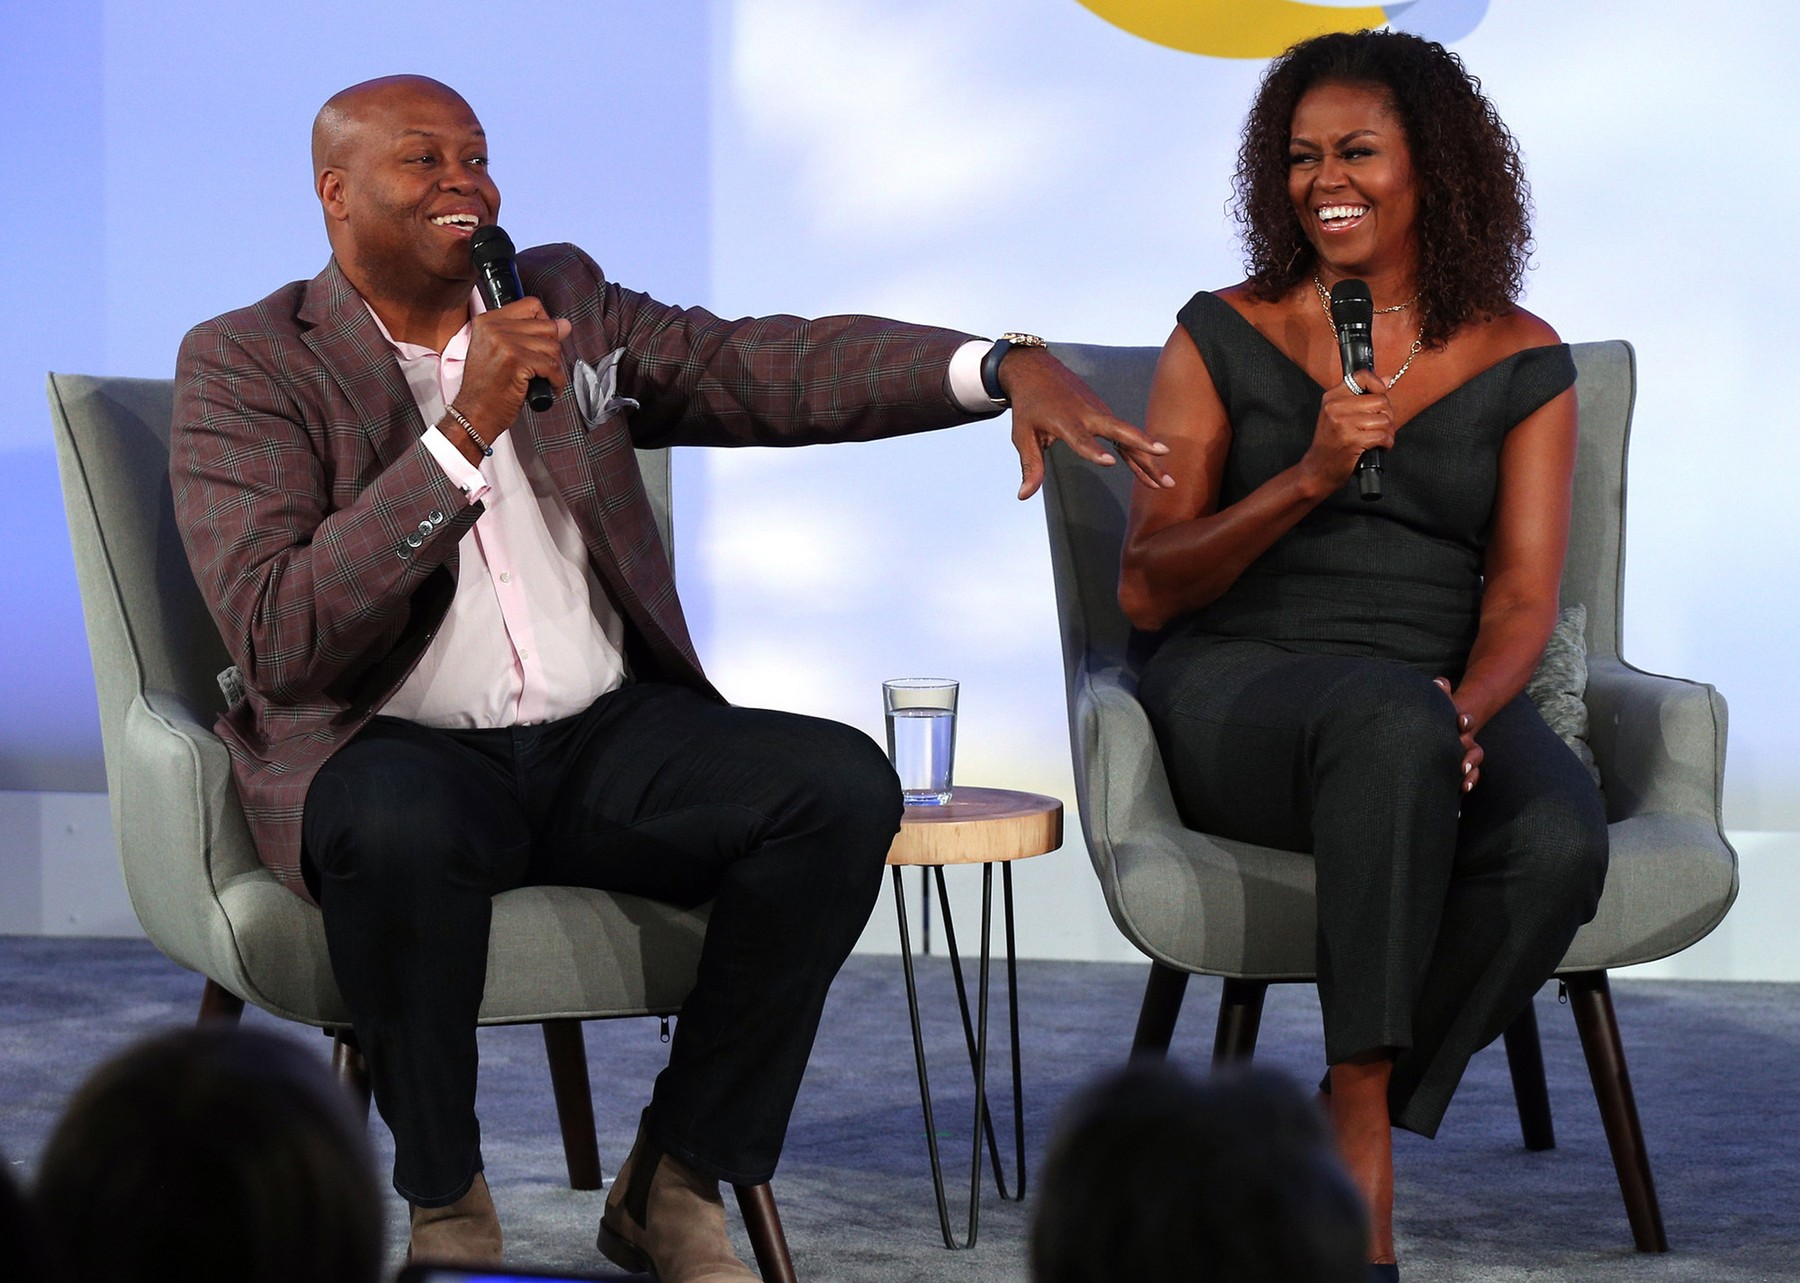 Former first lady Michelle Obama and her brother, Craig Robinson, converse during a session of the Obama Foundation Summit at the Kaplan Institute at the Illinois Institute of Technology in Chicago on Tuesday, Oct. 29, 2019., Image: 479754942, License: Rights-managed, Restrictions: *** World Rights *** US Newspapers Out ***, Model Release: no, Credit line: TNS / ddp USA / Profimedia